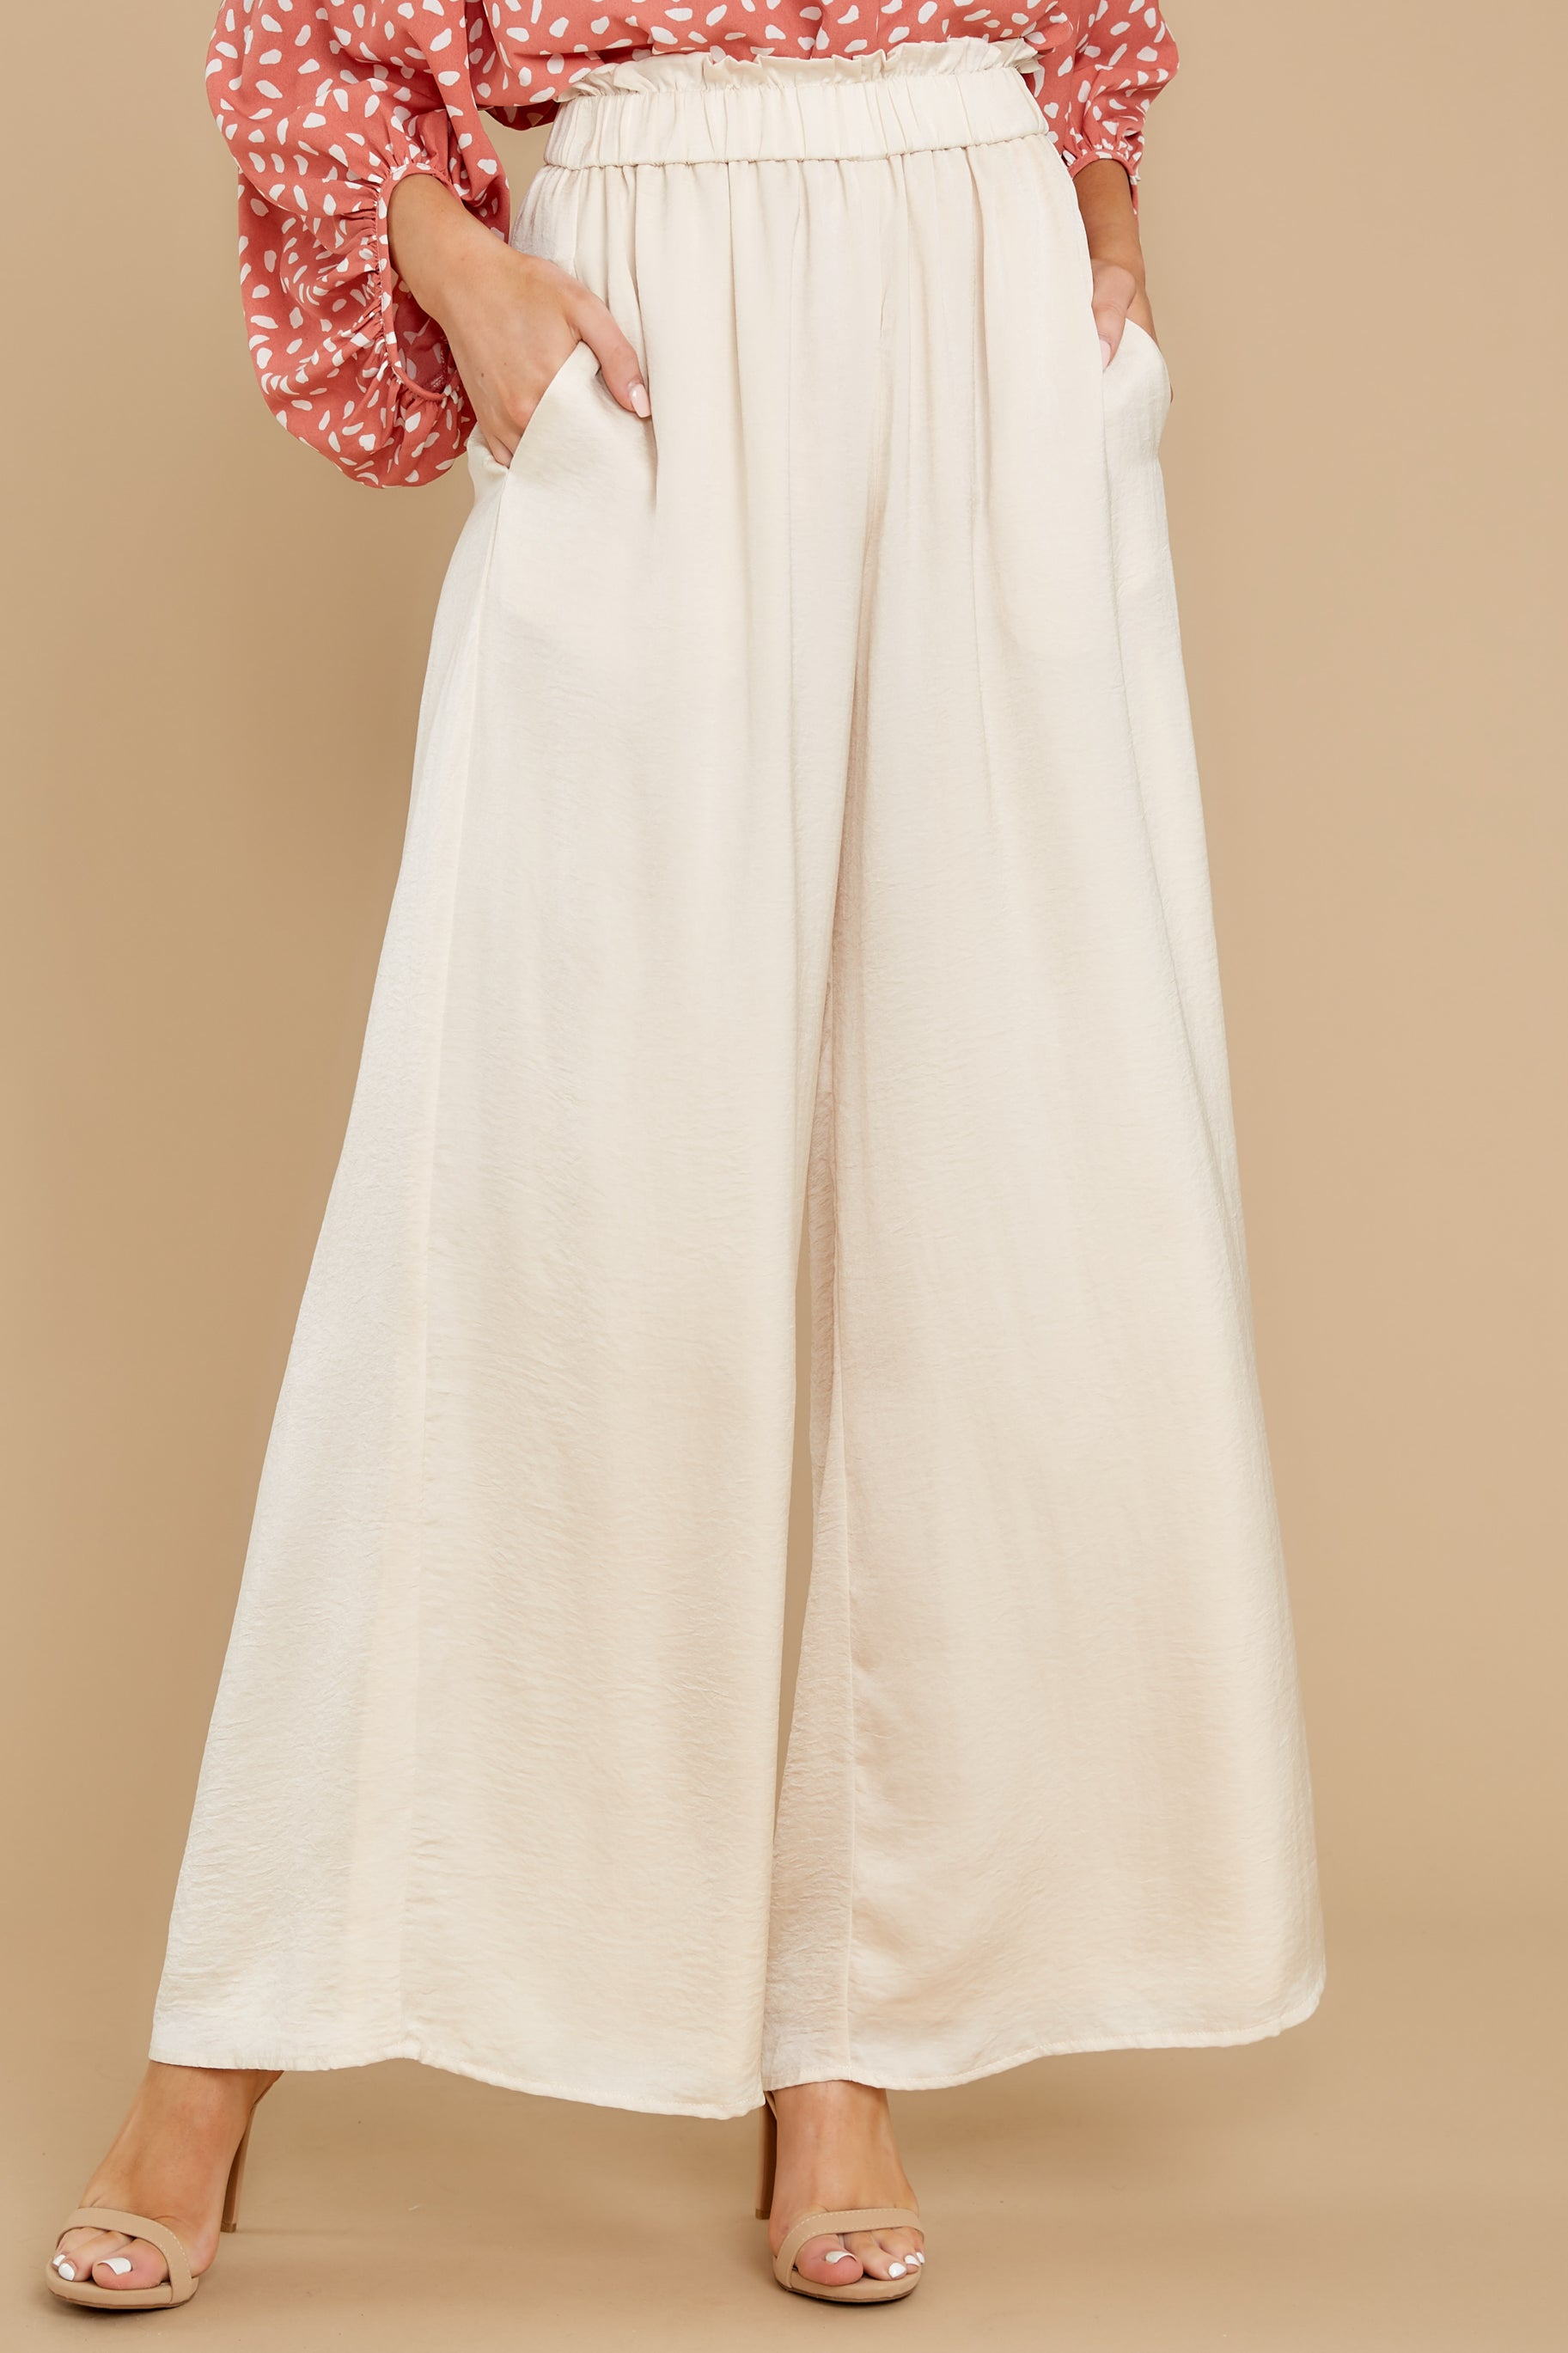 1930s Wide Leg Pants and Beach Pajamas English Factory Must Be Certain Ivory Pants $58.00 AT vintagedancer.com